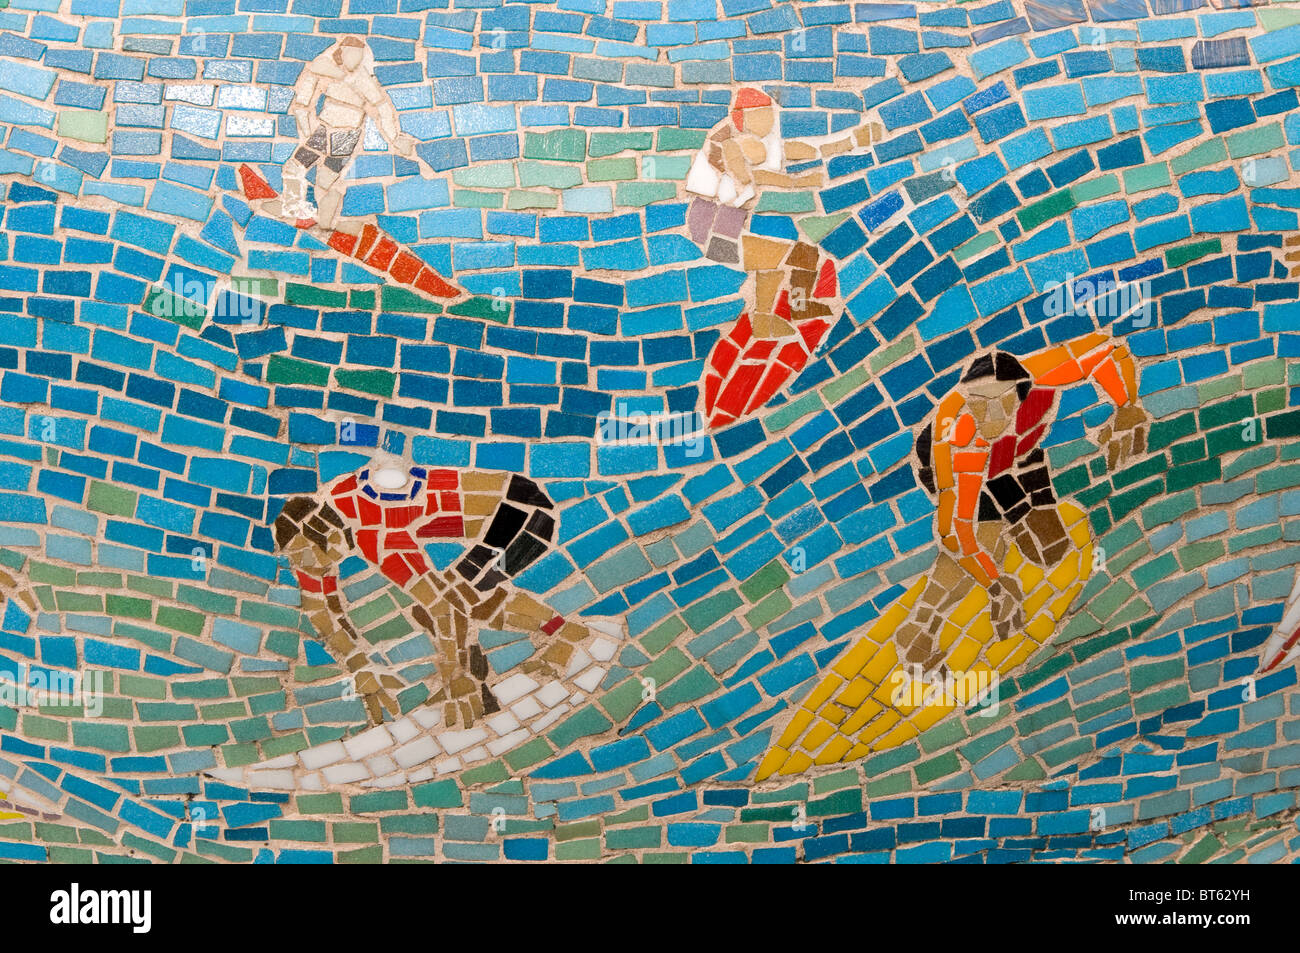 Mosaic surfer tile ceramic art wave stand up stood australia mosaic surfer tile ceramic art wave stand up stood australia southern hemisphere aussie bondi beach south east australasia new s dailygadgetfo Images